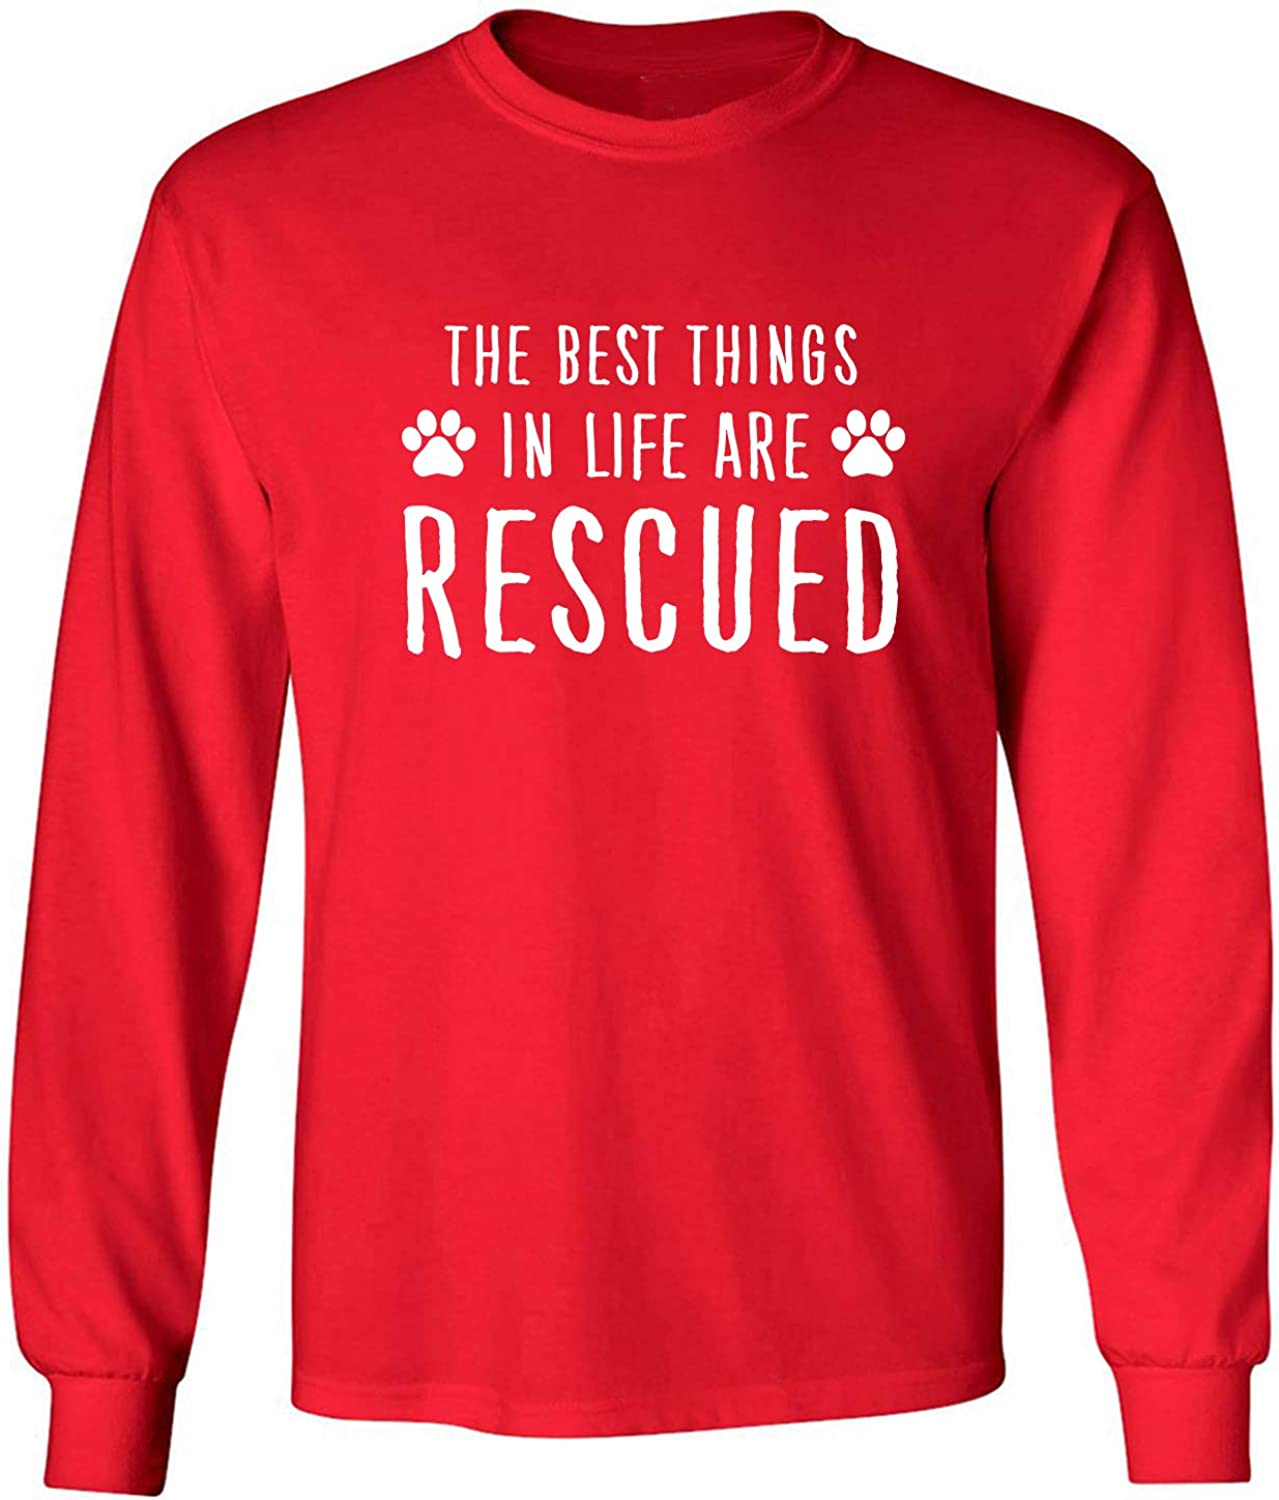 Best Things in Life are Rescued Adult Long Sleeve T-Shirt in Red - XXX-Large